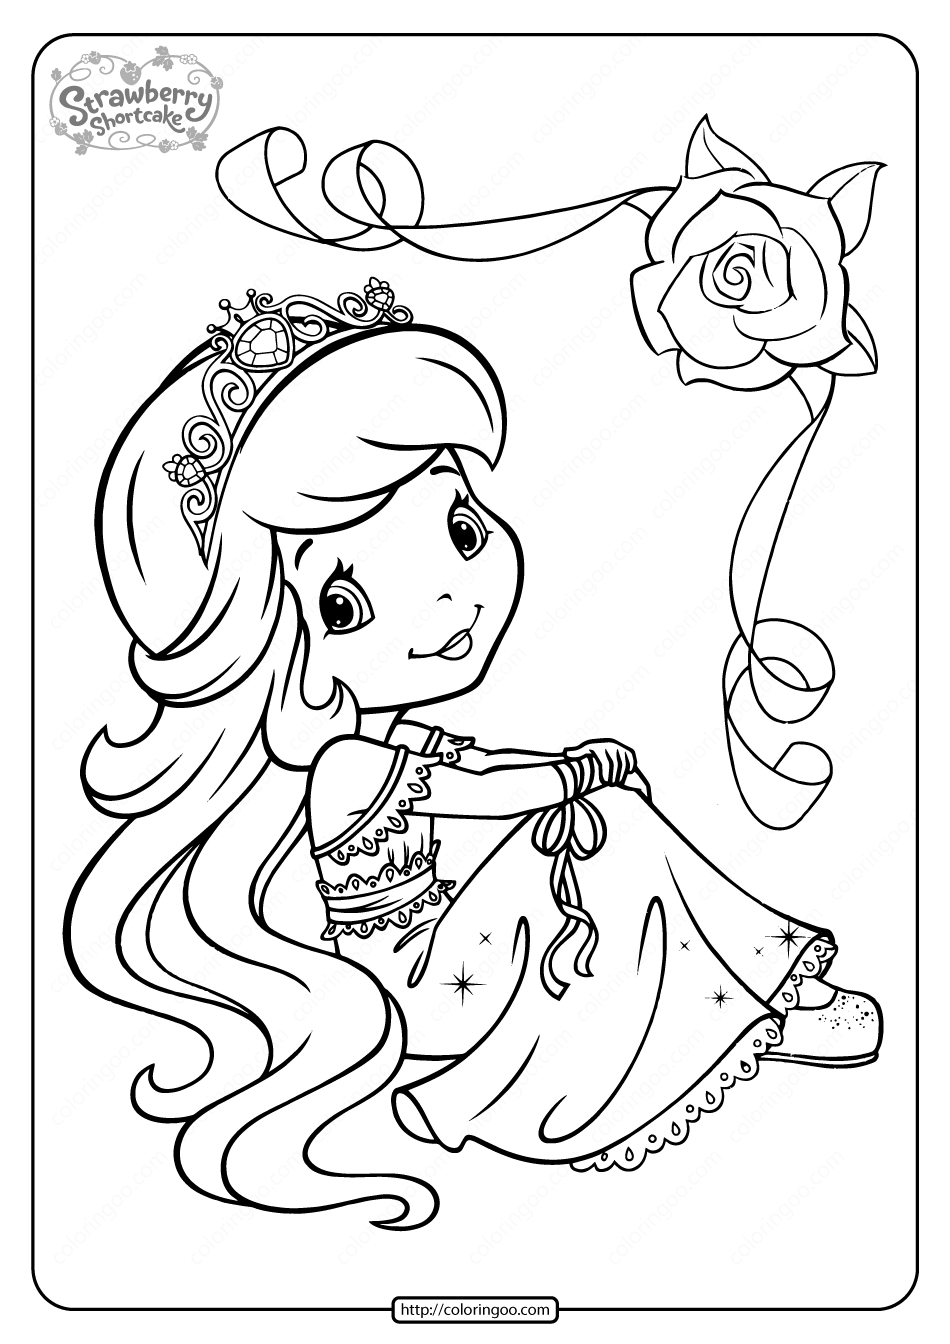 Printable Strawberry Shortcake Coloring Pages - 12